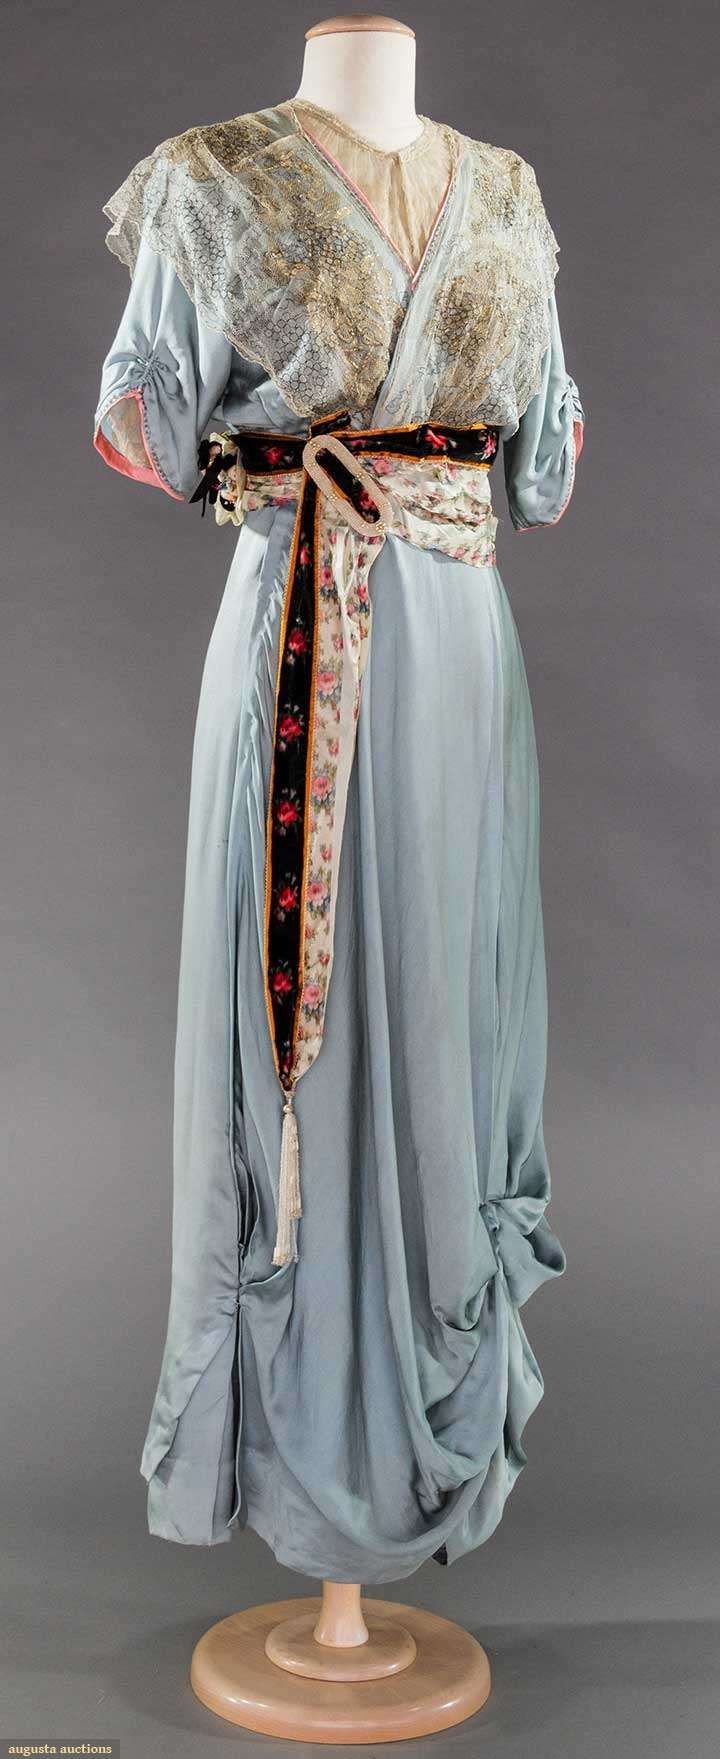 SKY BLUE EVENING GOWN, 1910-1912